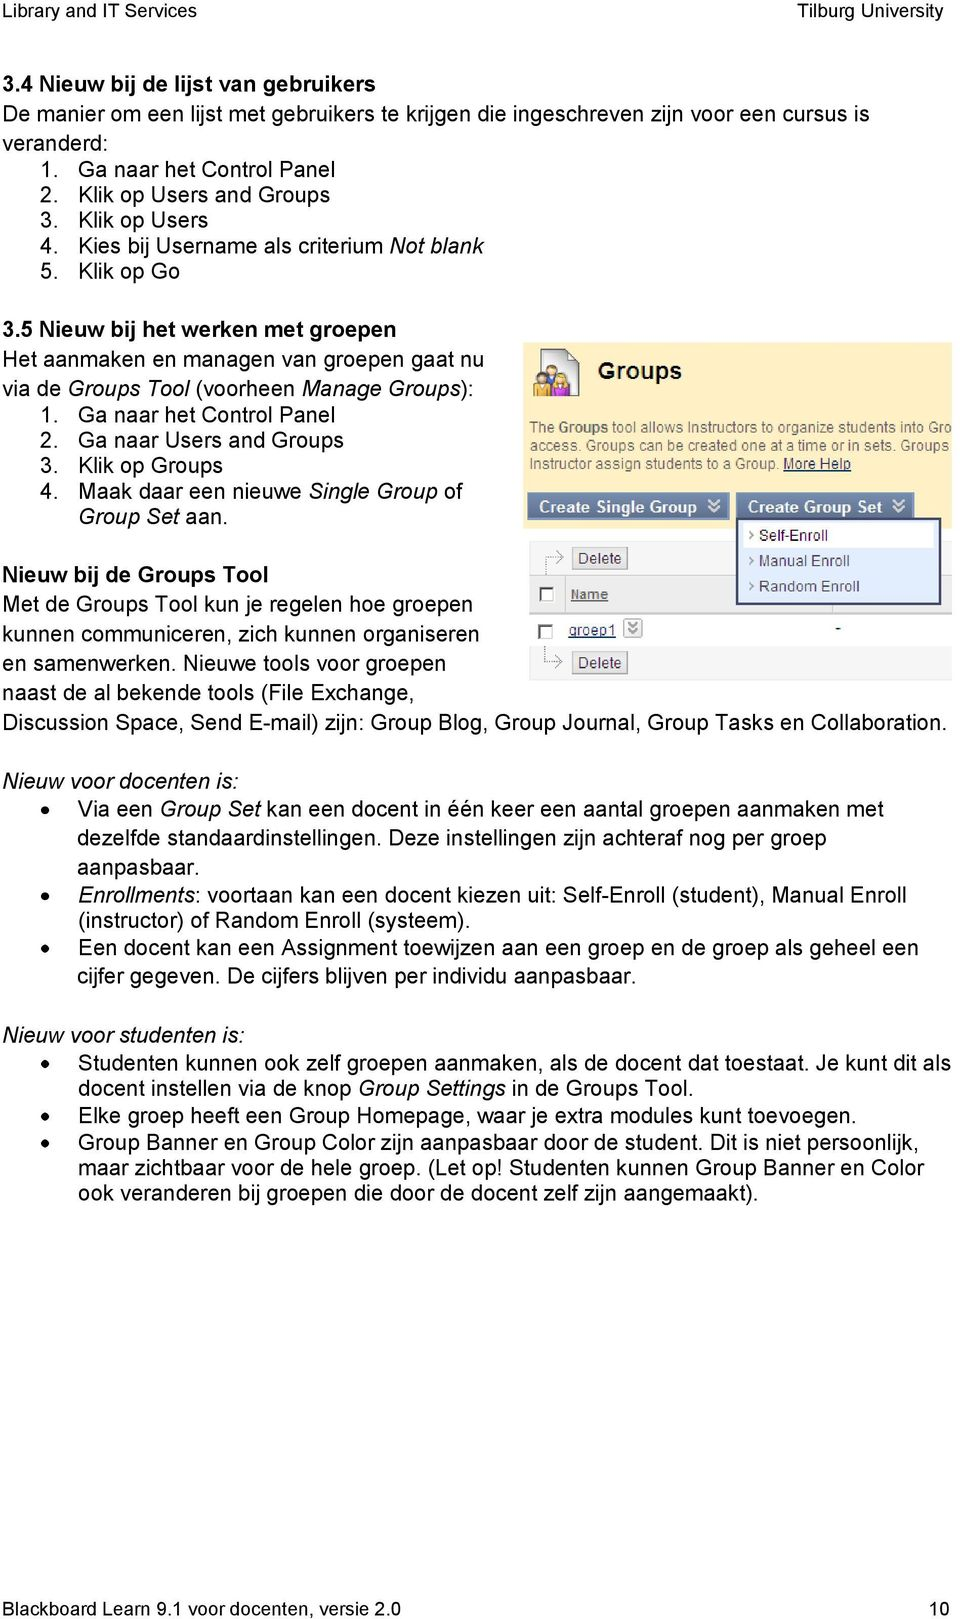 5 Nieuw bij het werken met groepen Het aanmaken en managen van groepen gaat nu via de Groups Tool (voorheen Manage Groups): 1. Ga naar het Control Panel 2. Ga naar Users and Groups 3.